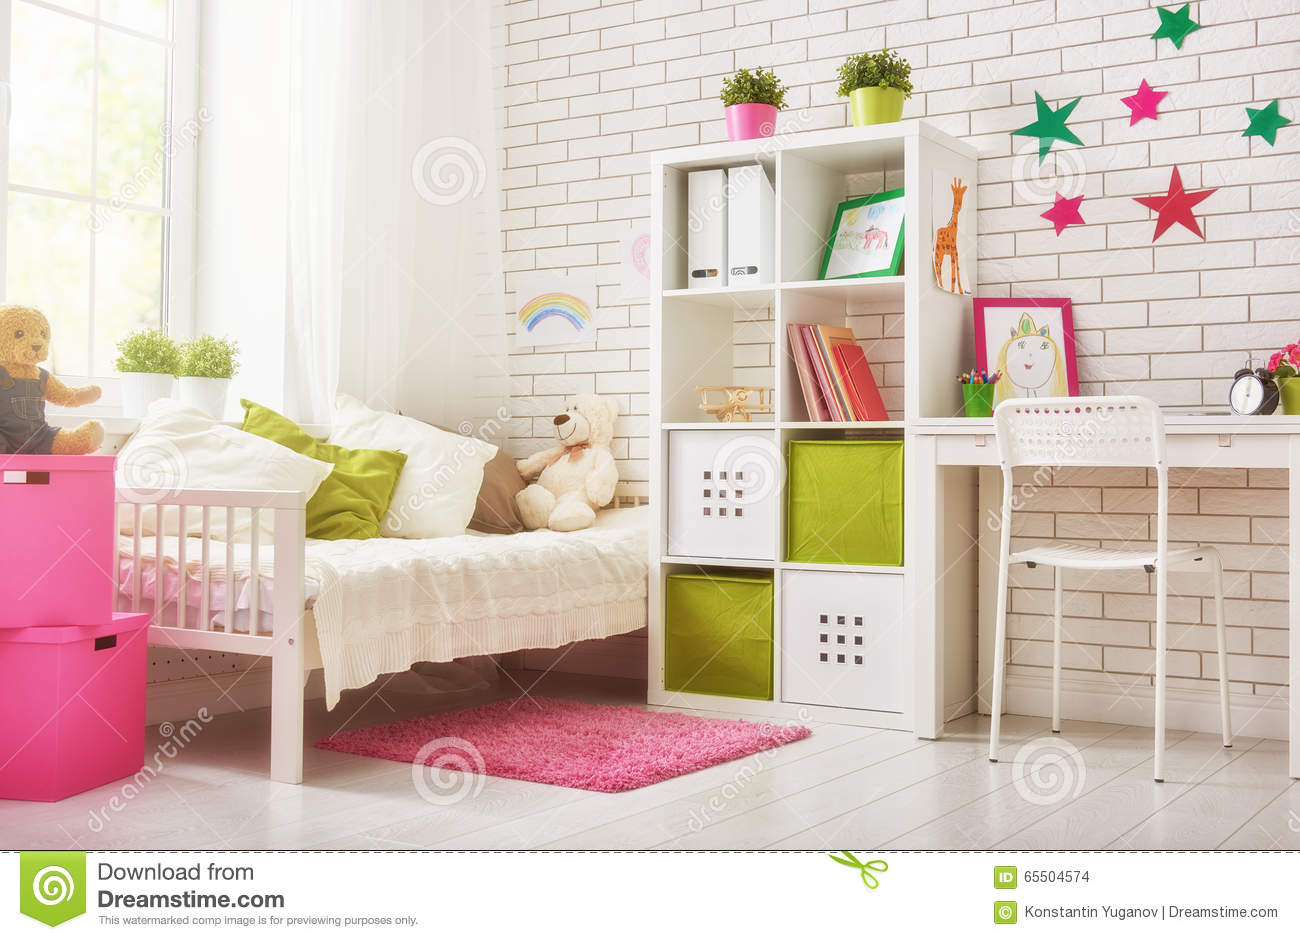 chambre coucher pour la fille d 39 enfant photo stock image 65504574. Black Bedroom Furniture Sets. Home Design Ideas